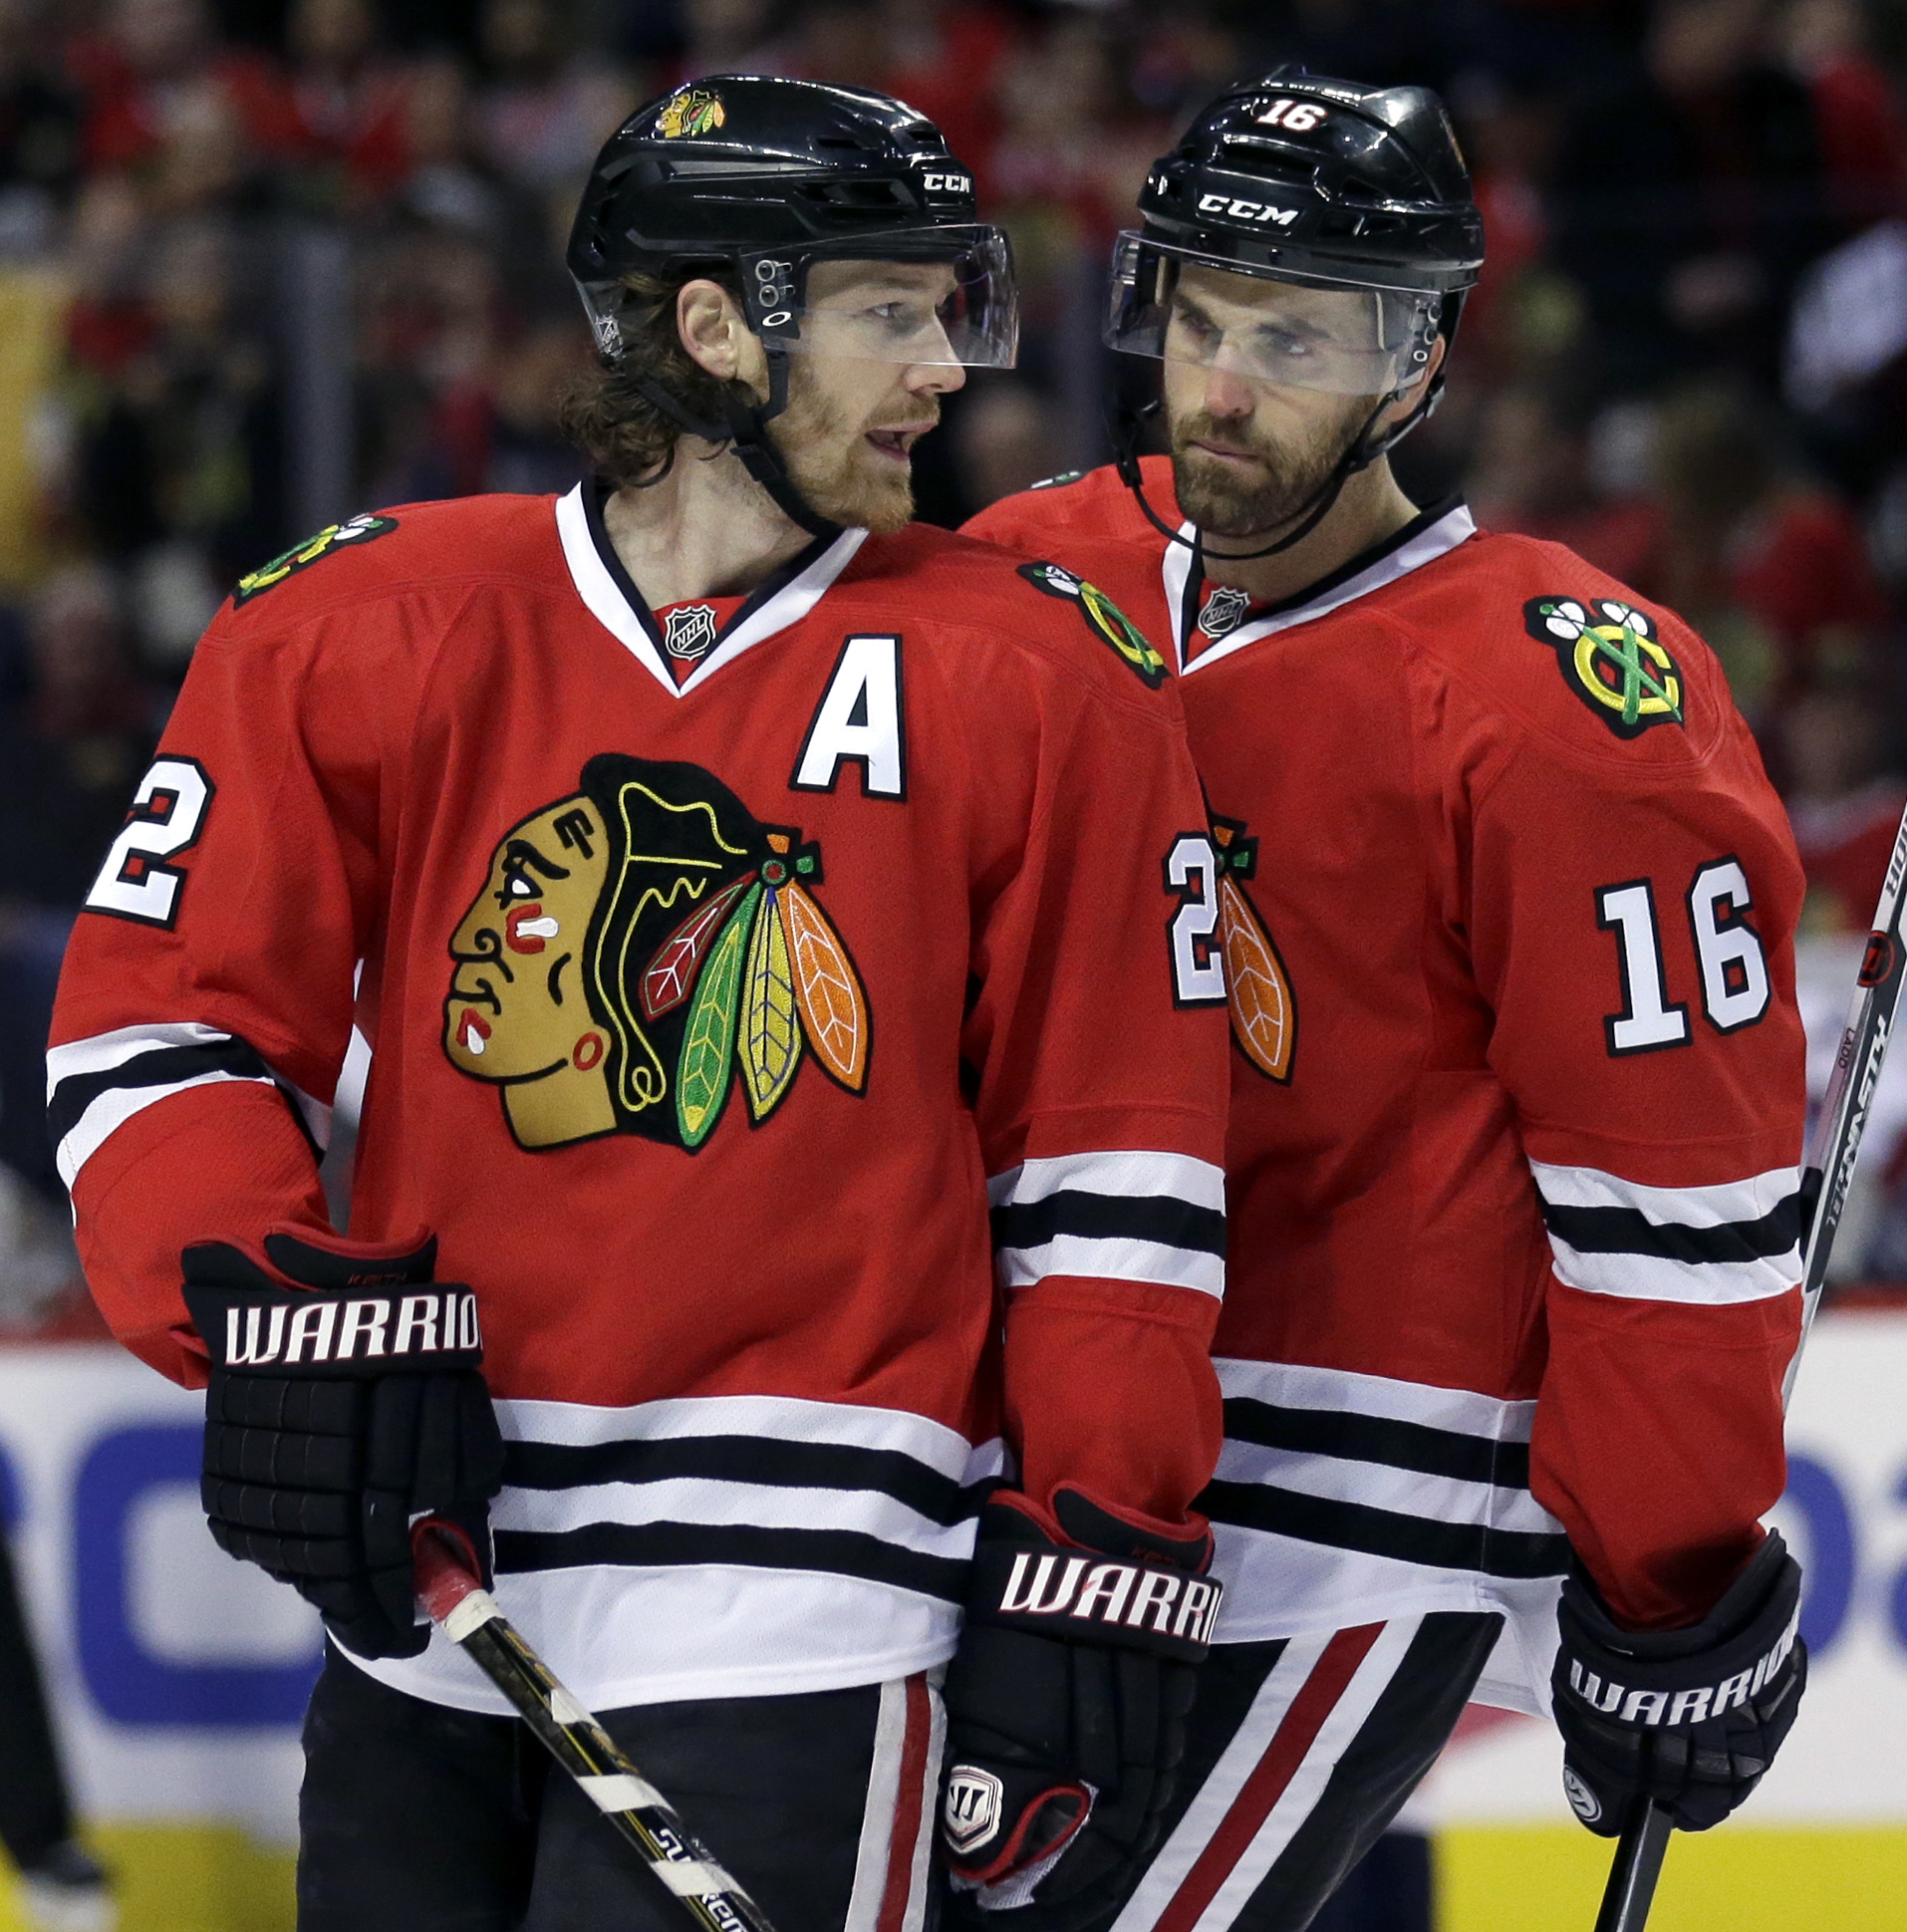 Chicago Blackhawks defenseman Duncan Keith, left, talks with left wing Andrew Ladd during the first period of an NHL hockey game against the Washington Capitals Sunday,Feb. 28, 2016, in Chicago. (AP Photo/Nam Y. Huh)